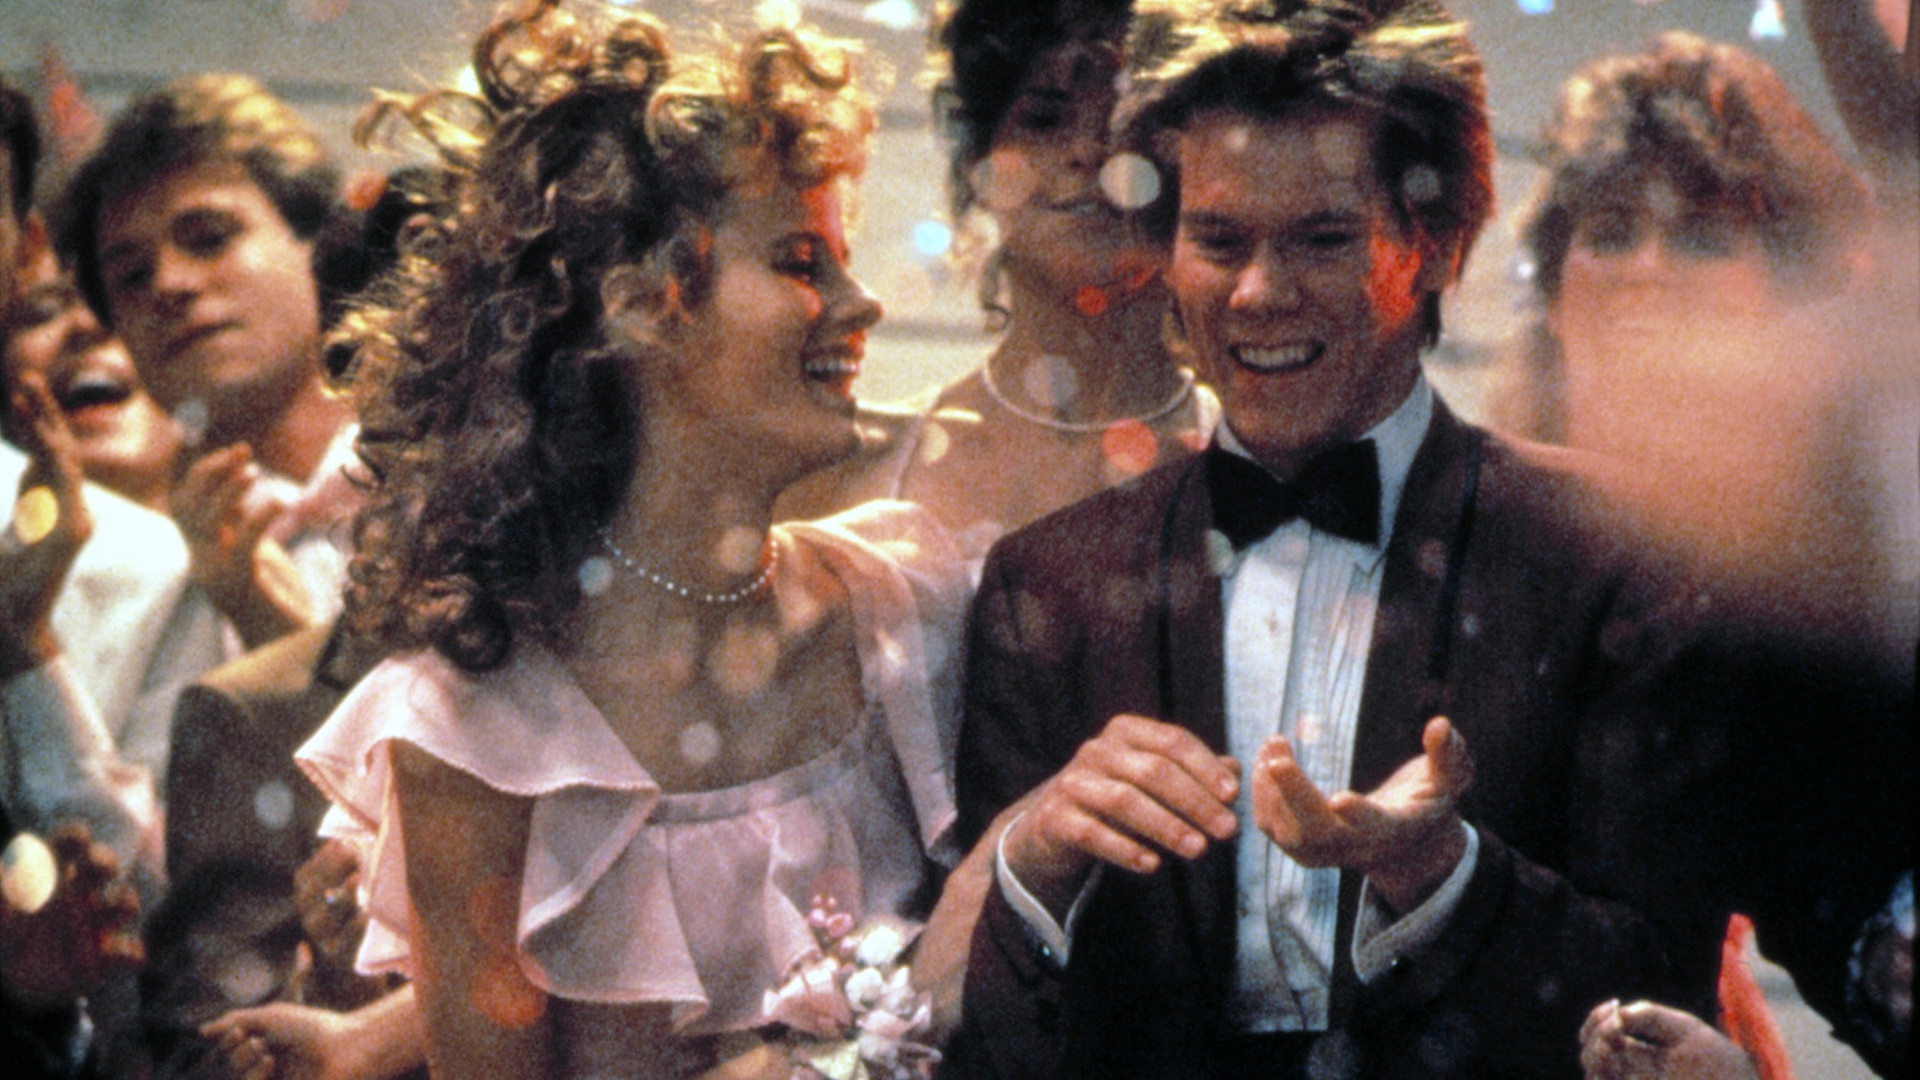 10 Things You Didn't Know About Footloose – IFC